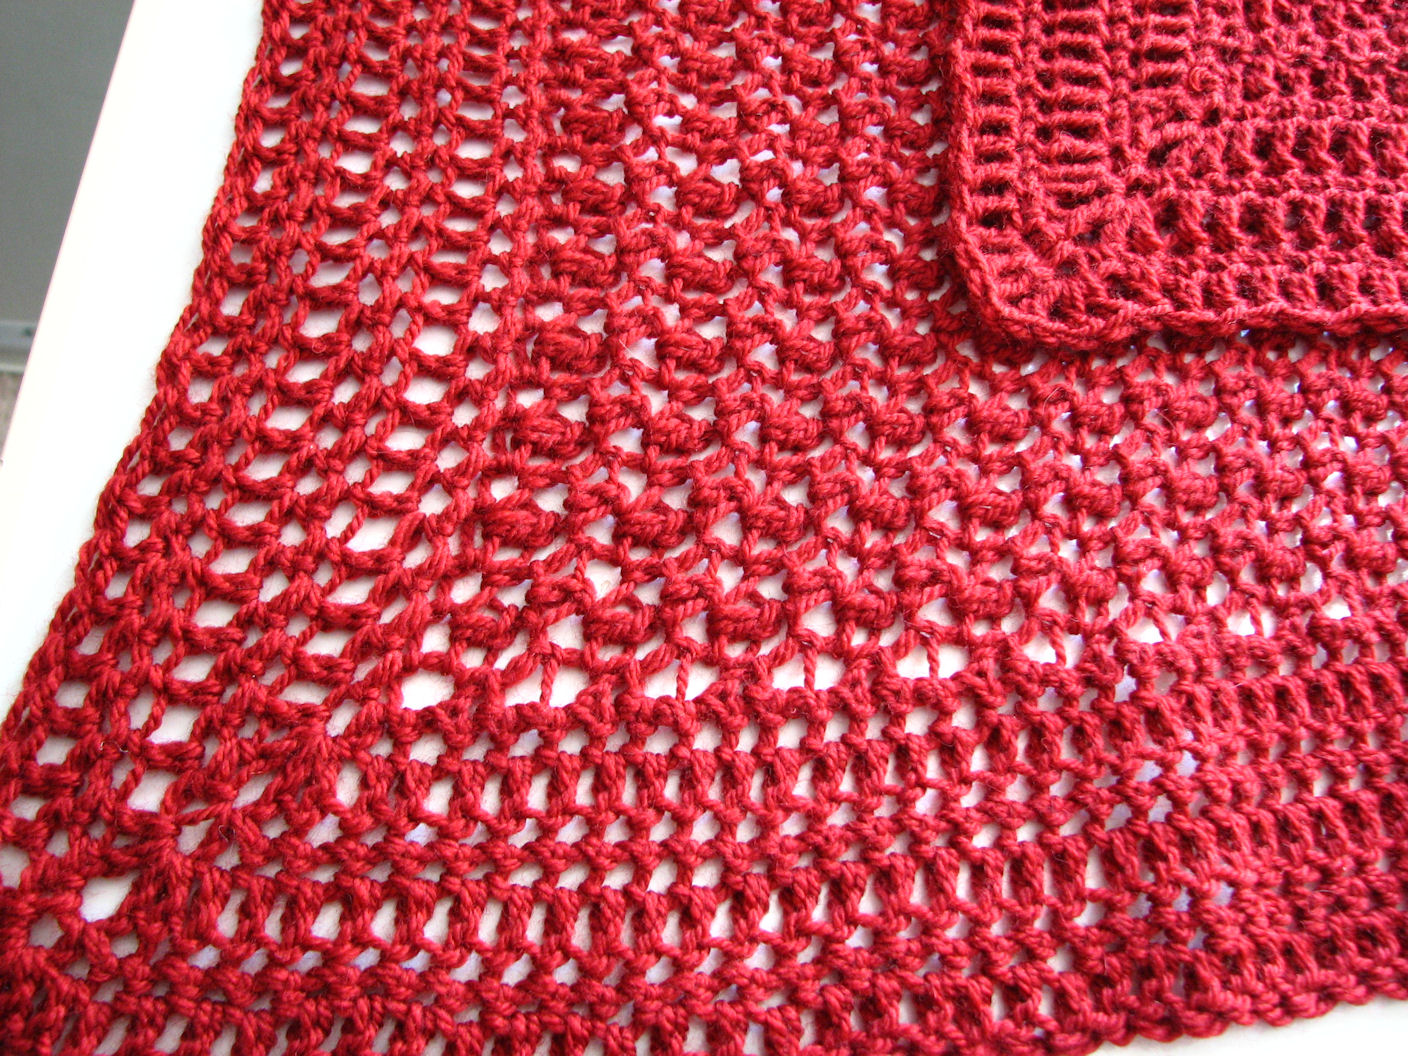 Crochet Patterns Lap Blankets : ... pattern for a very simple seed stitch lap blanket, which is available